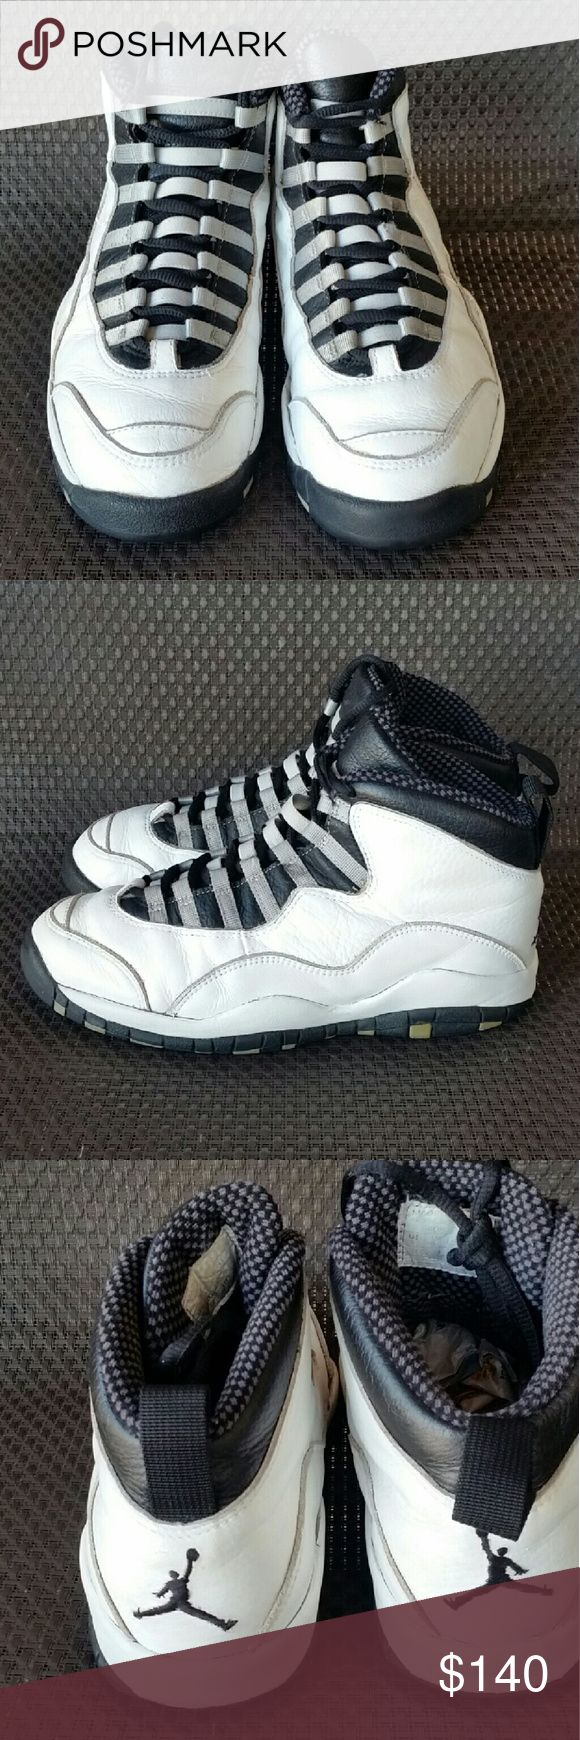 """1994 O.G Jordan 10 Steel Retro """"Rare"""" Here we have a pair of 1994 """"Extremely Rare"""" with the OG toe cap 100% Authentic in fair condition Jordan original 10 steel shoes.These shoes are very rare and vintage so wear at your own risk.No midsole crumbling. If you have any questions please ask. Jordan Shoes Sneakers"""